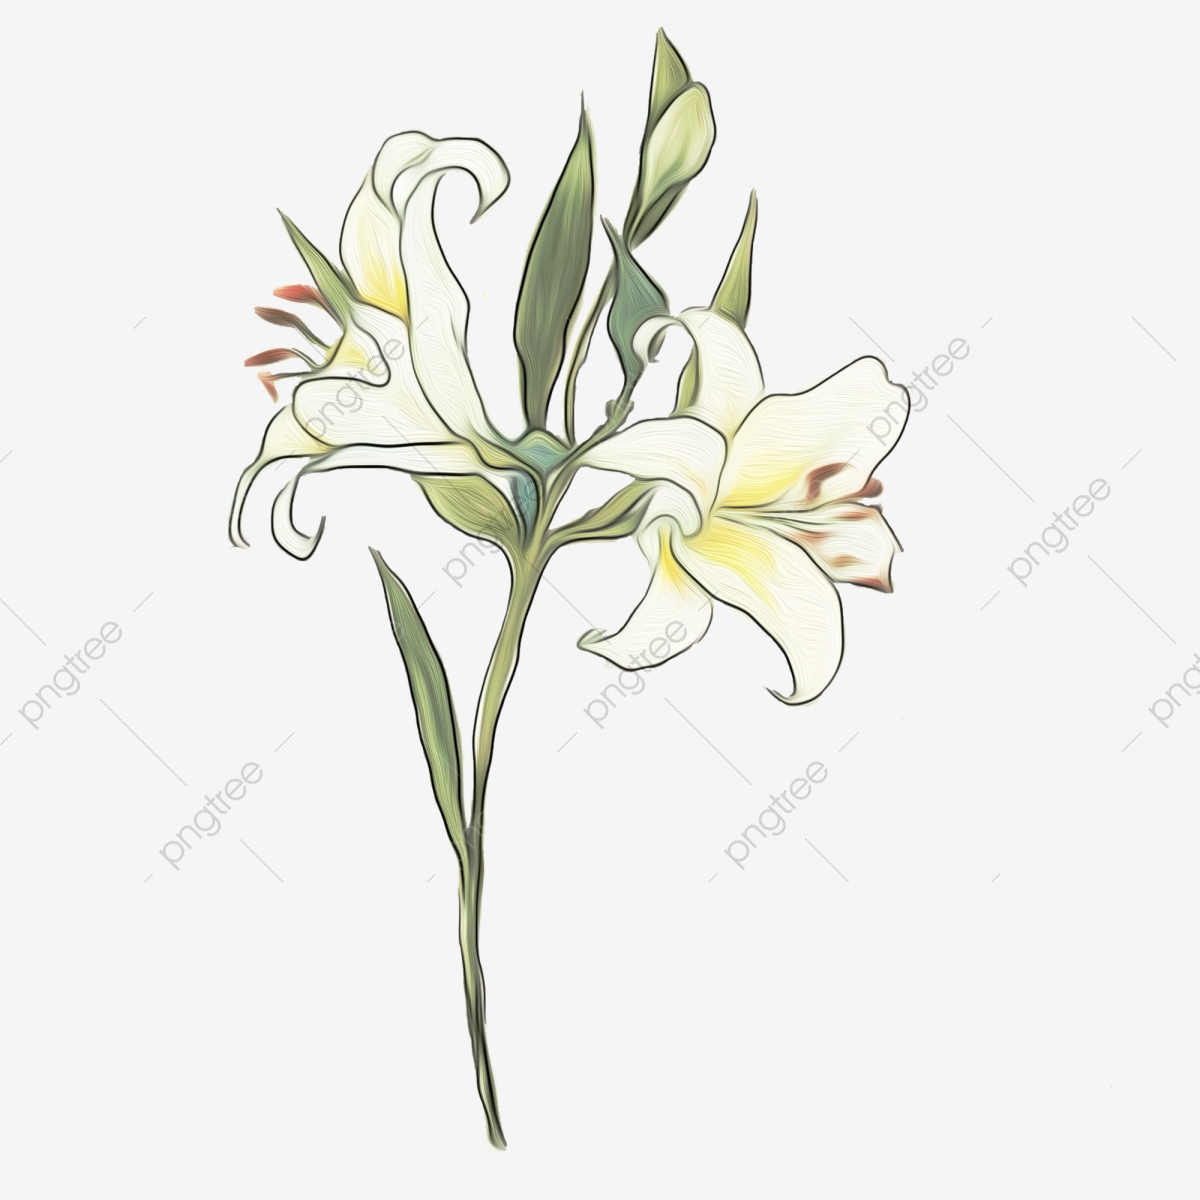 Lily White Lily Hand Drawn Delicate Lily Lily Flower Illustration.